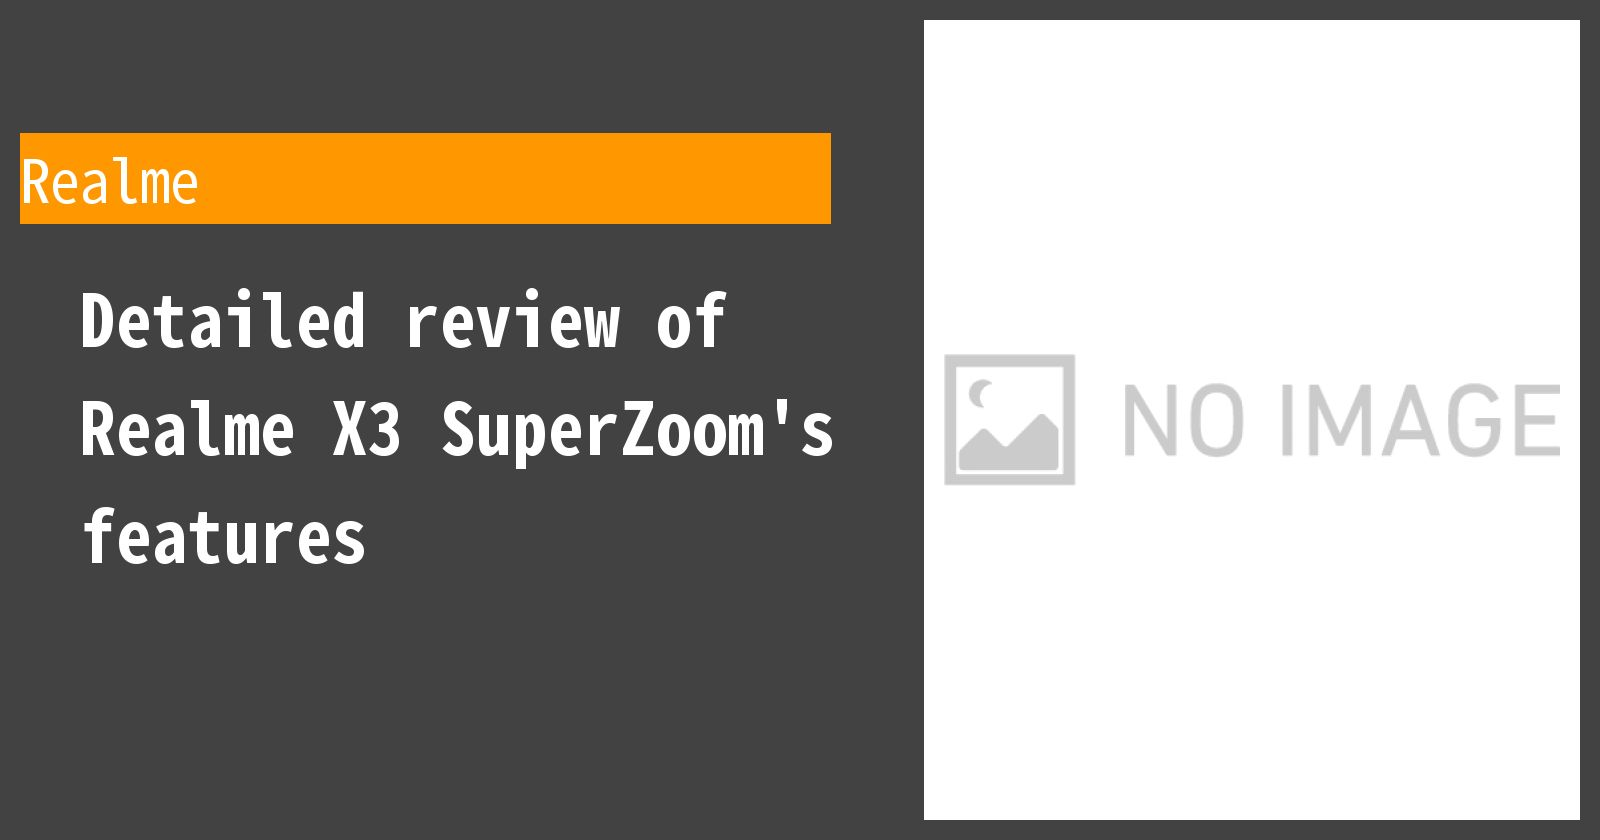 Detailed review of Realme X3 SuperZoom's features